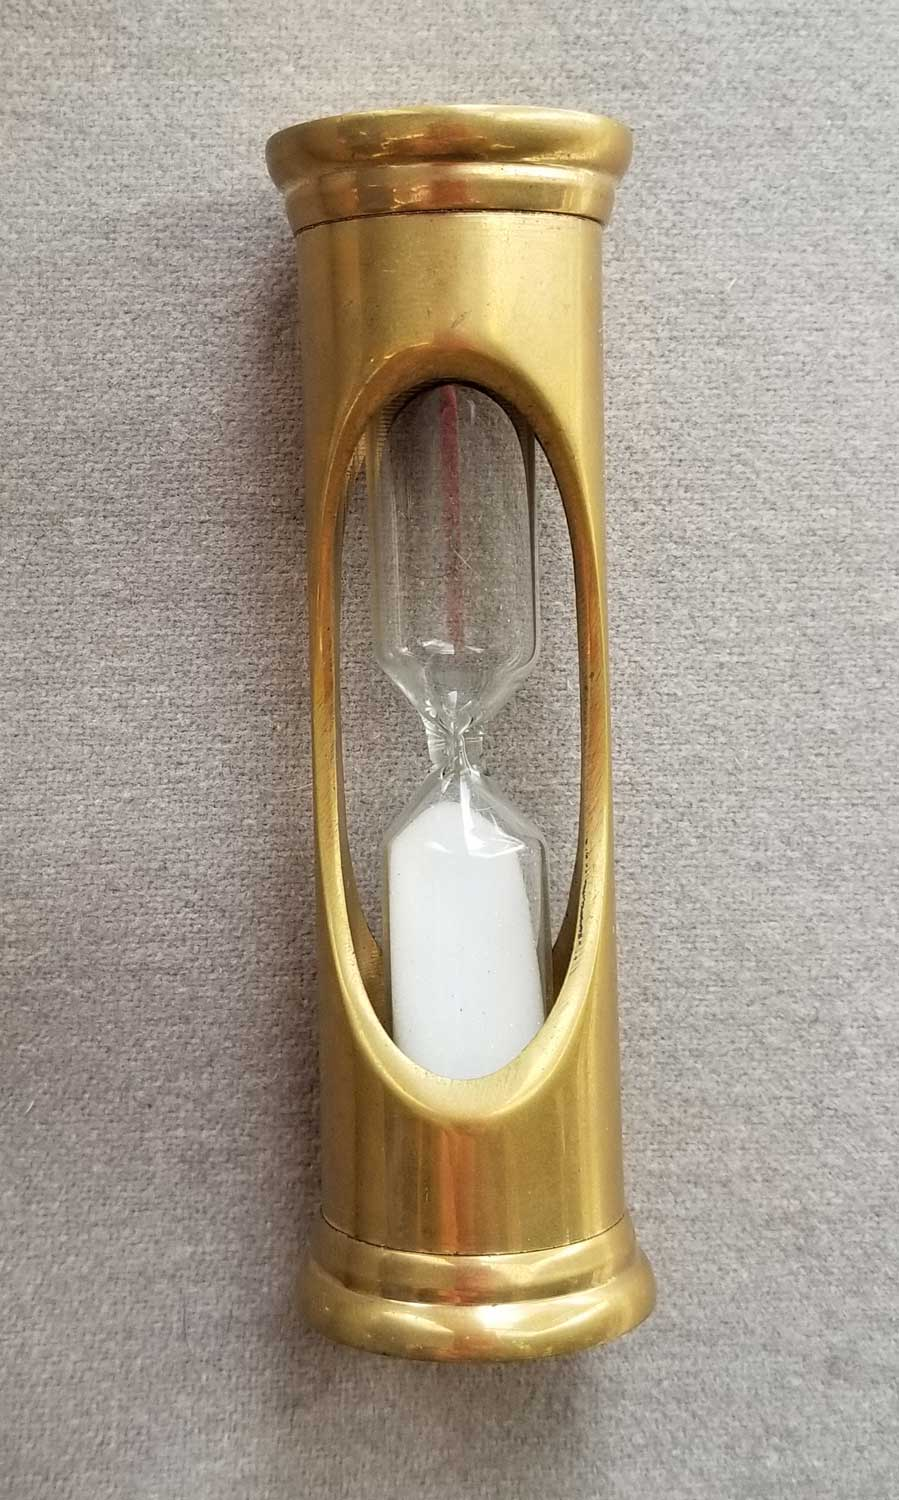 3 Minute Brass Hourglass